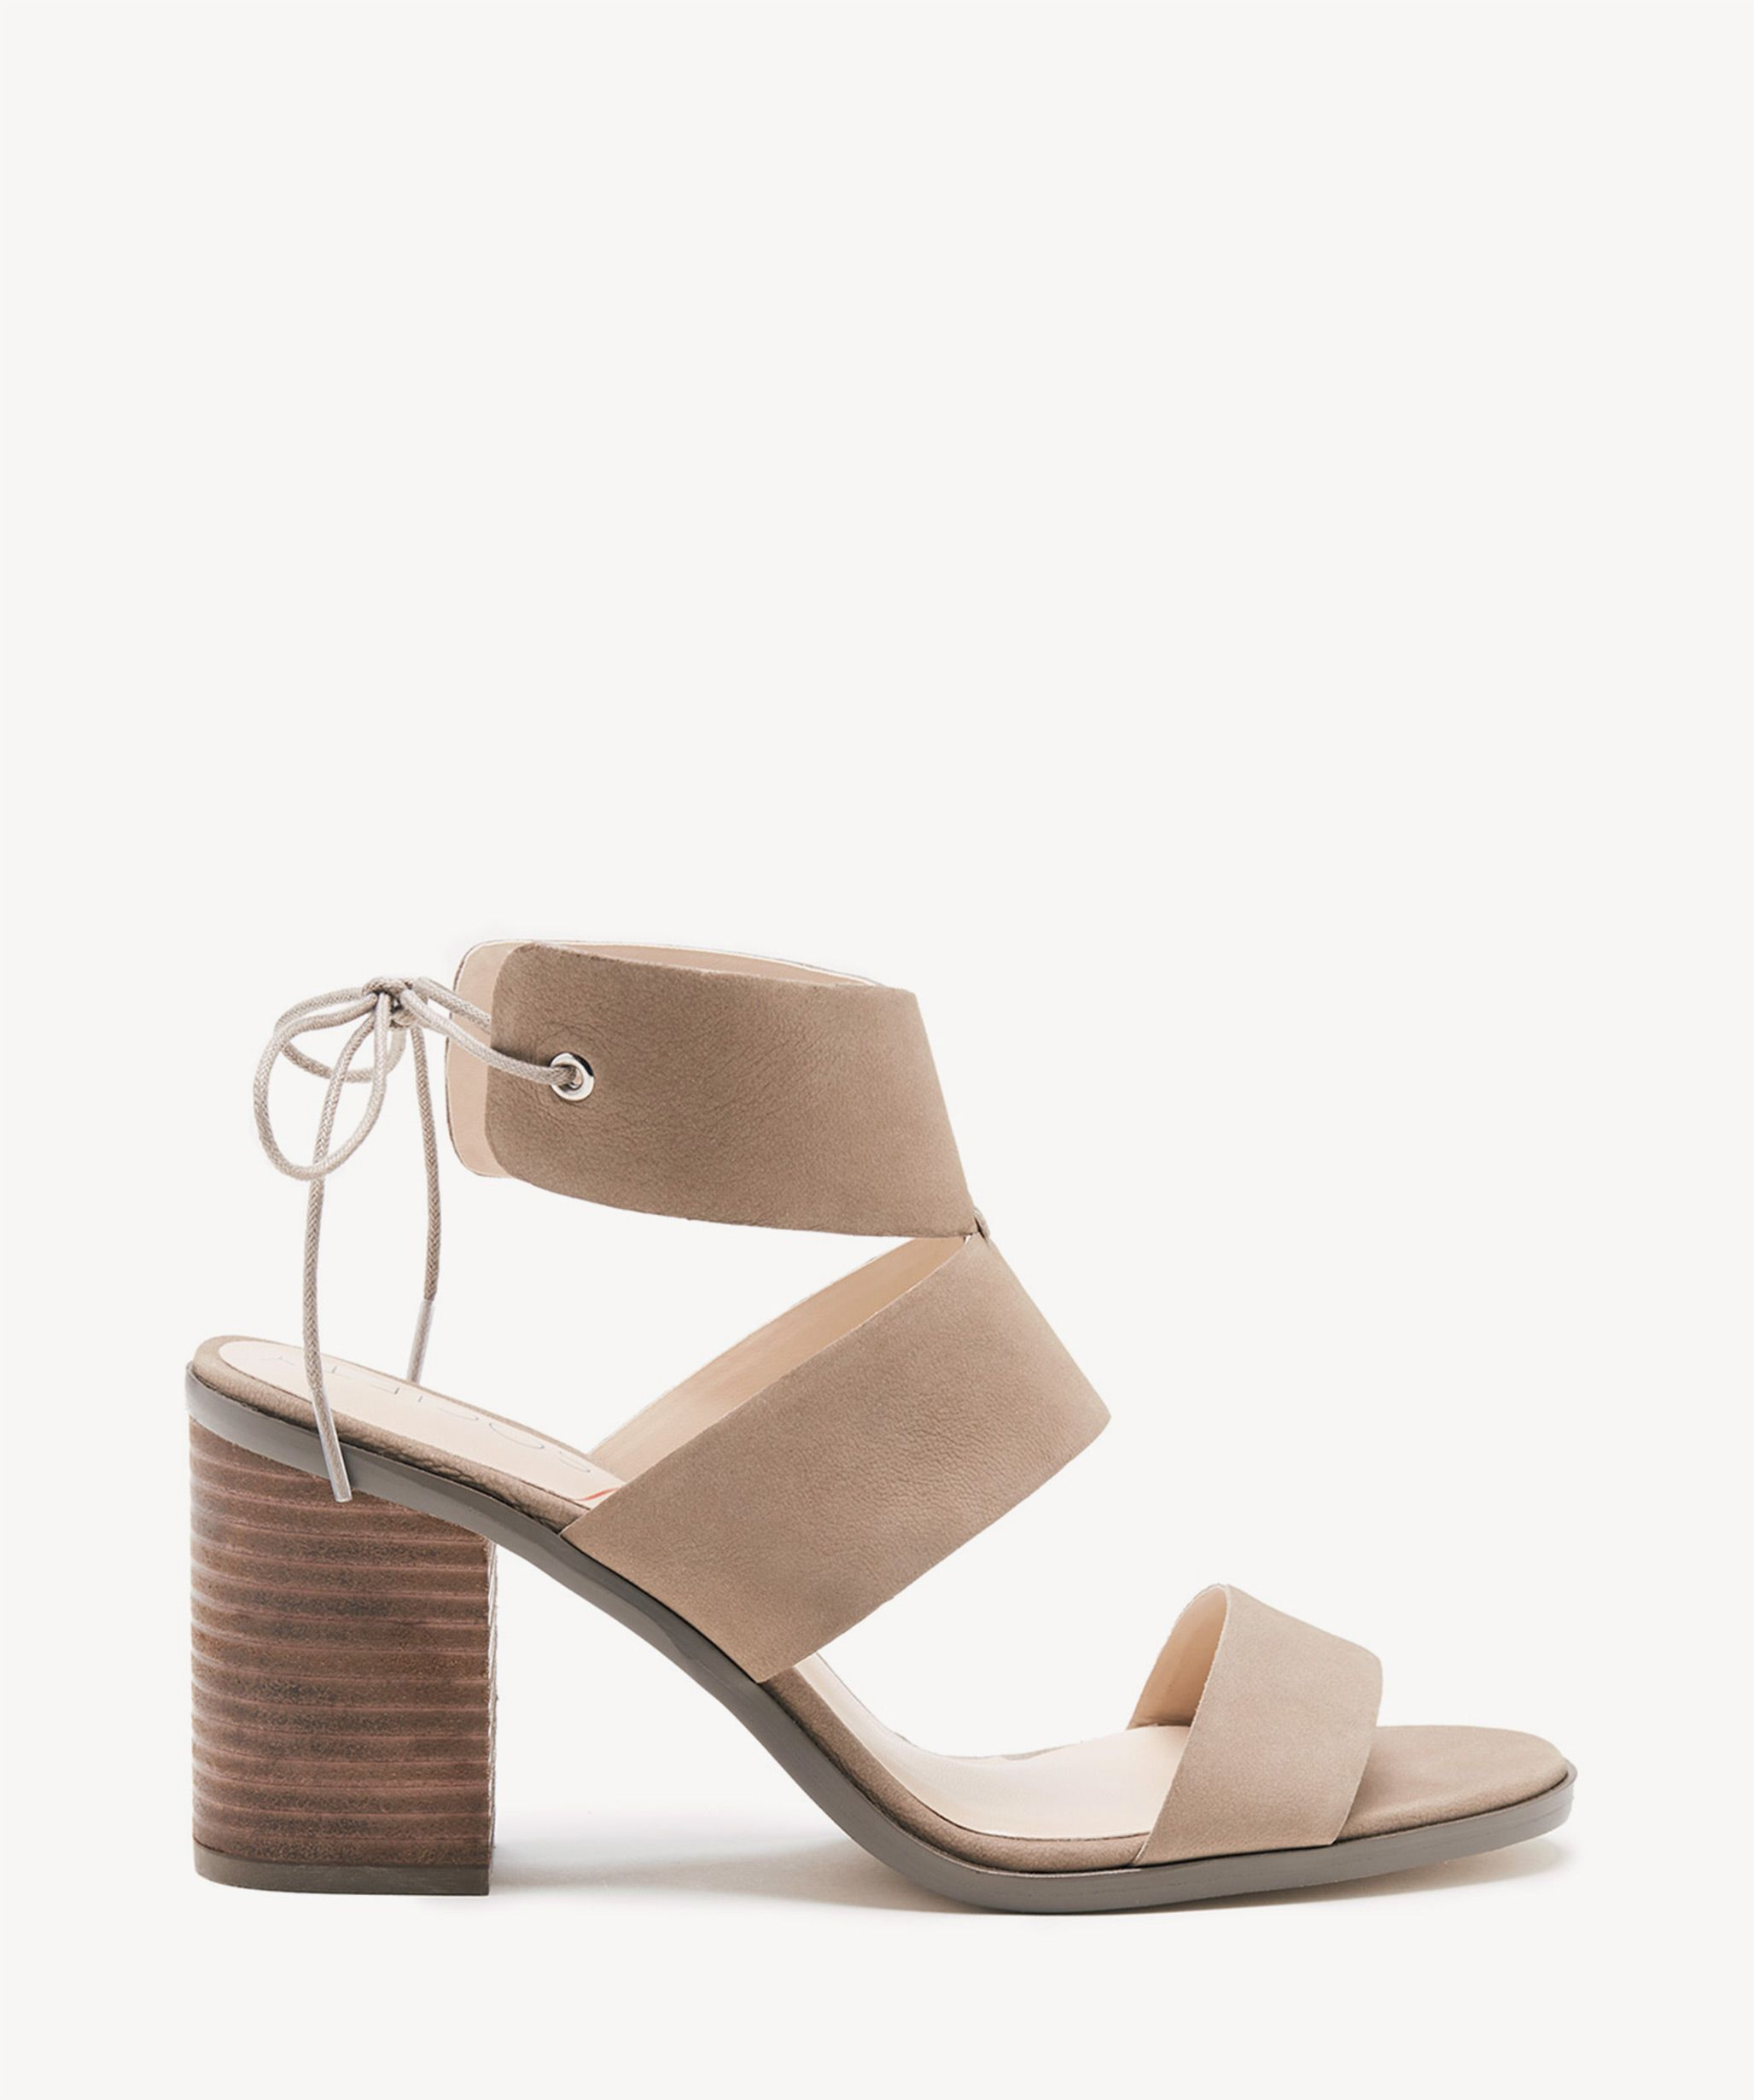 a8a4a7b6765 Sole Society Hayden Backless Heeled Sandals Night Taupe